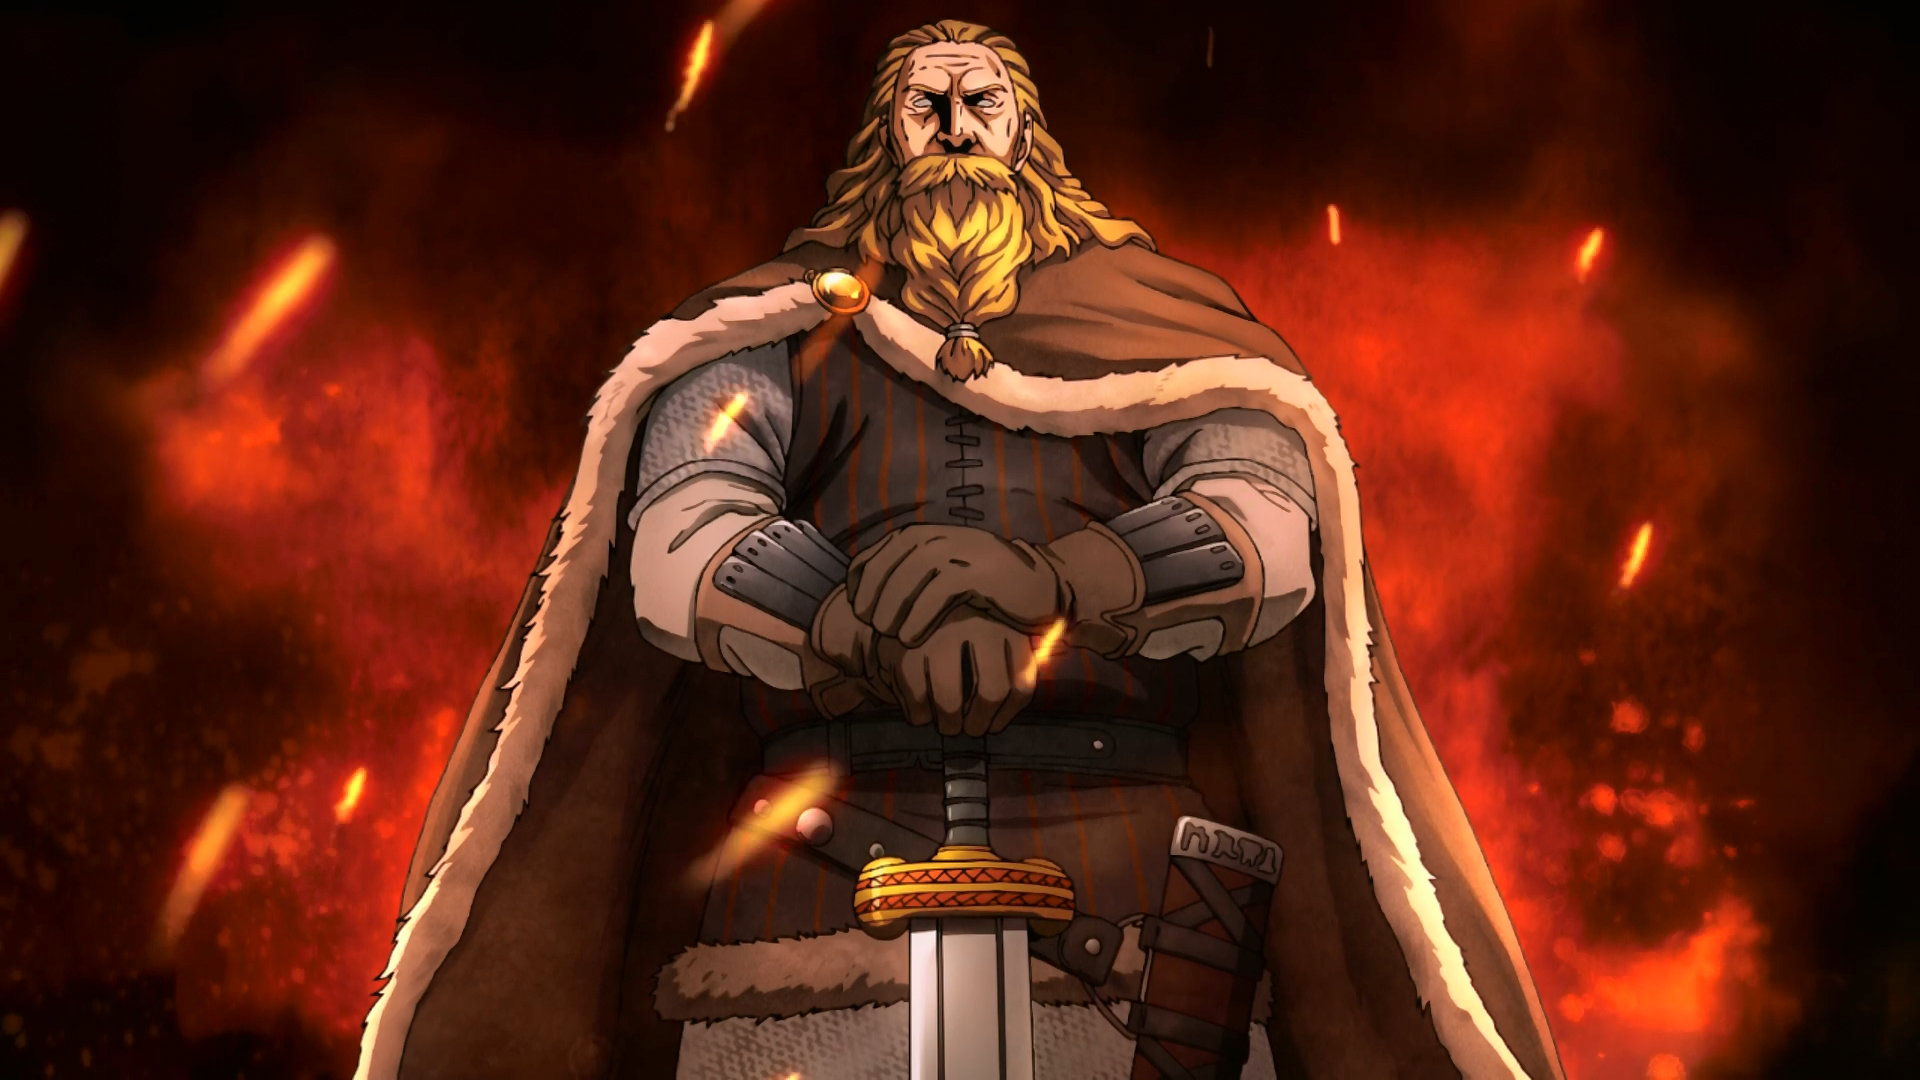 Harald (King of Norway)